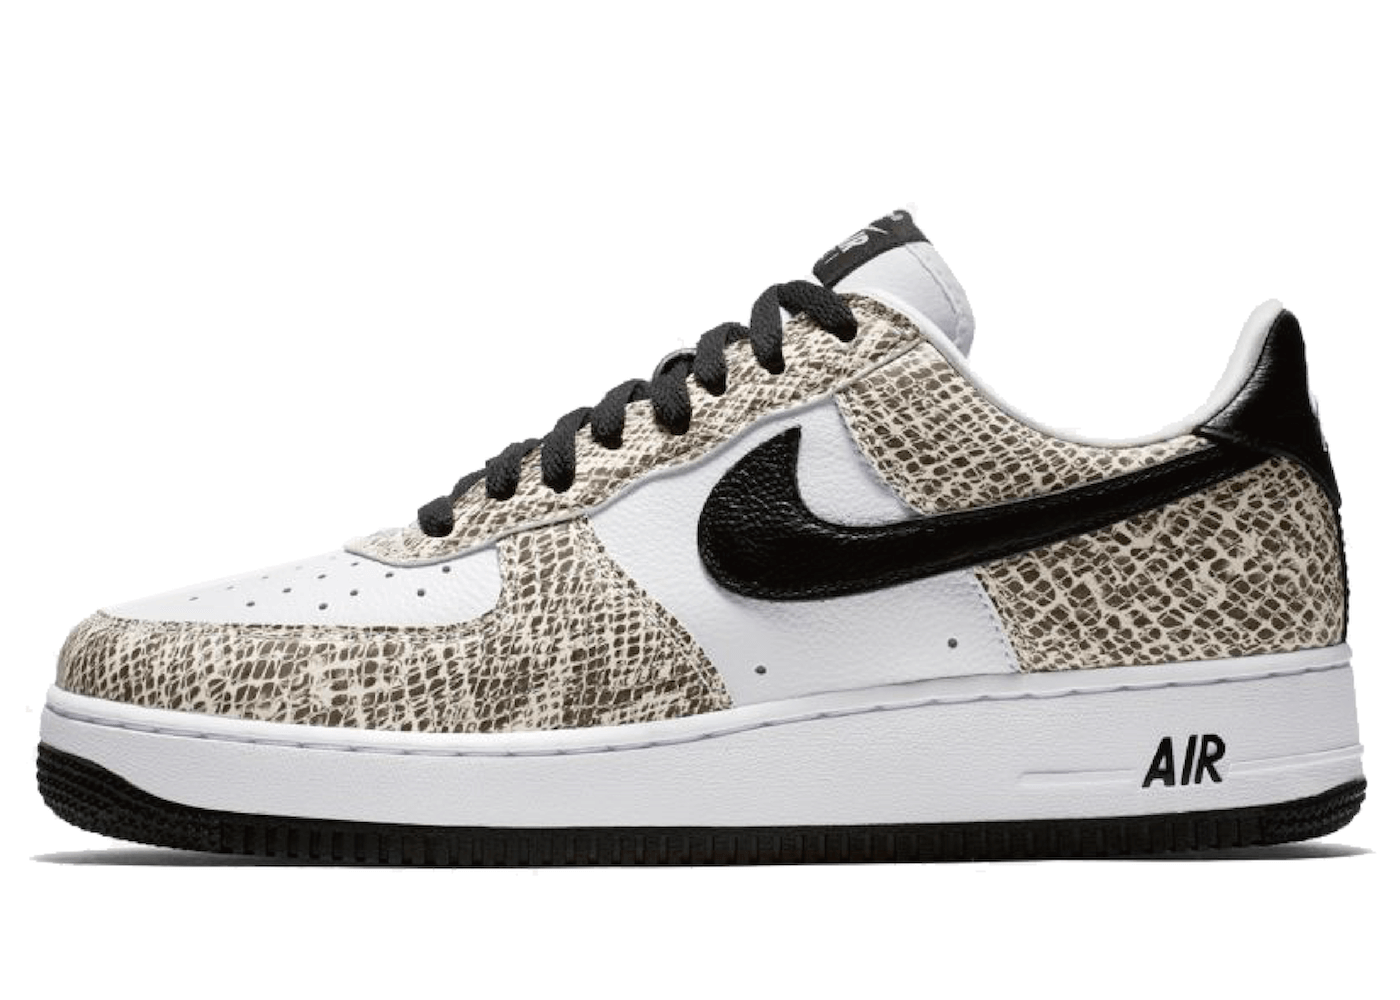 Nike Air Force 1 Low Retro Cocoa Snake (2018)の写真